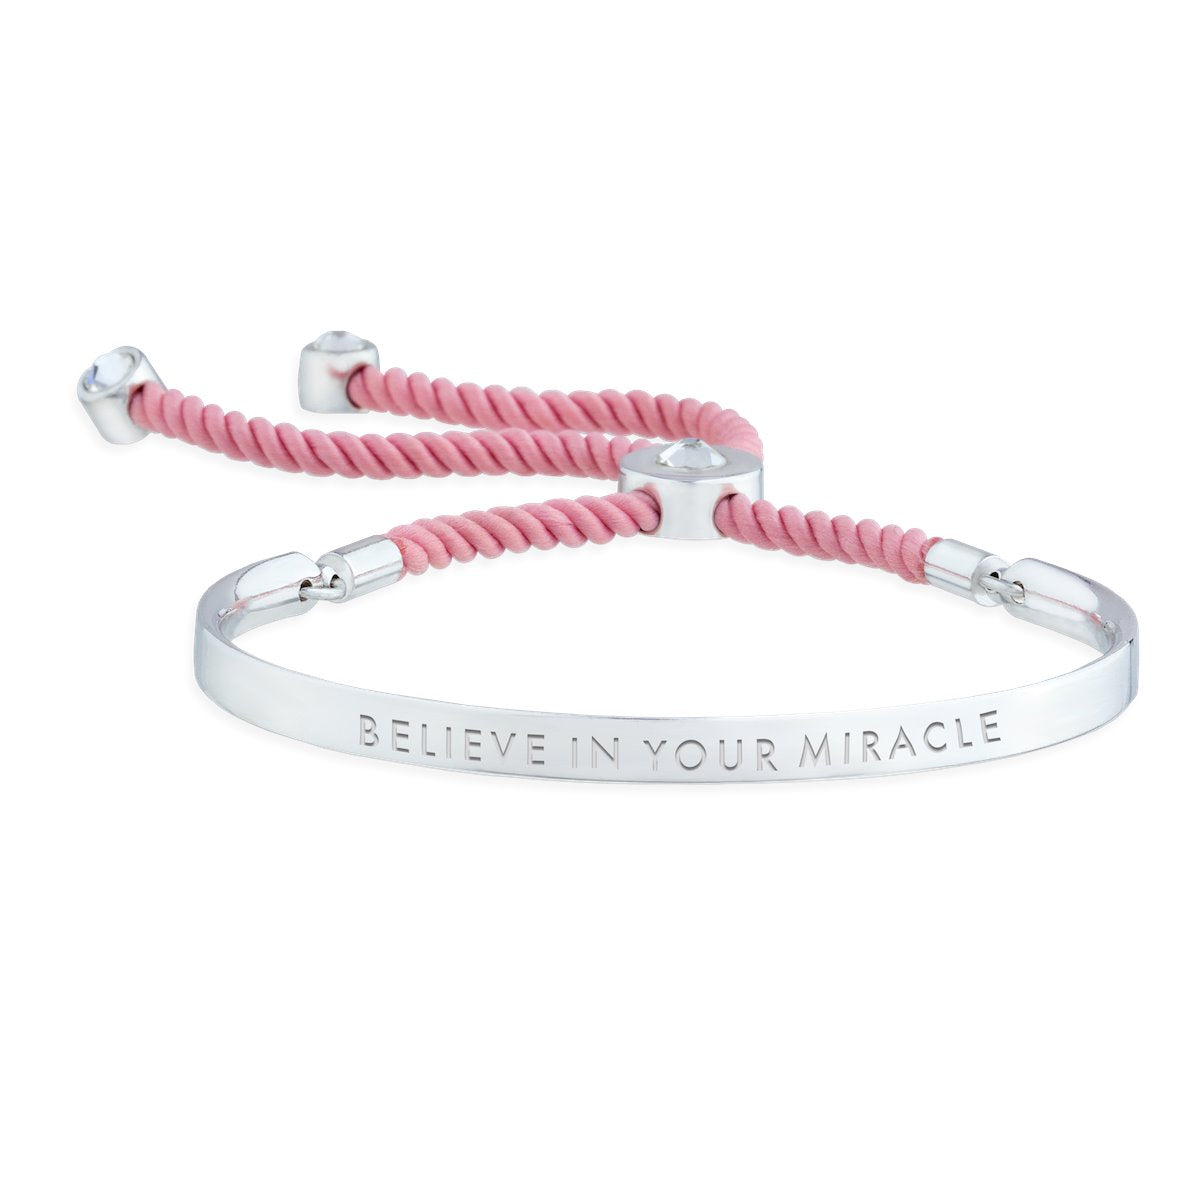 Believe in your Miracle – Words of Empowerment Bracelet